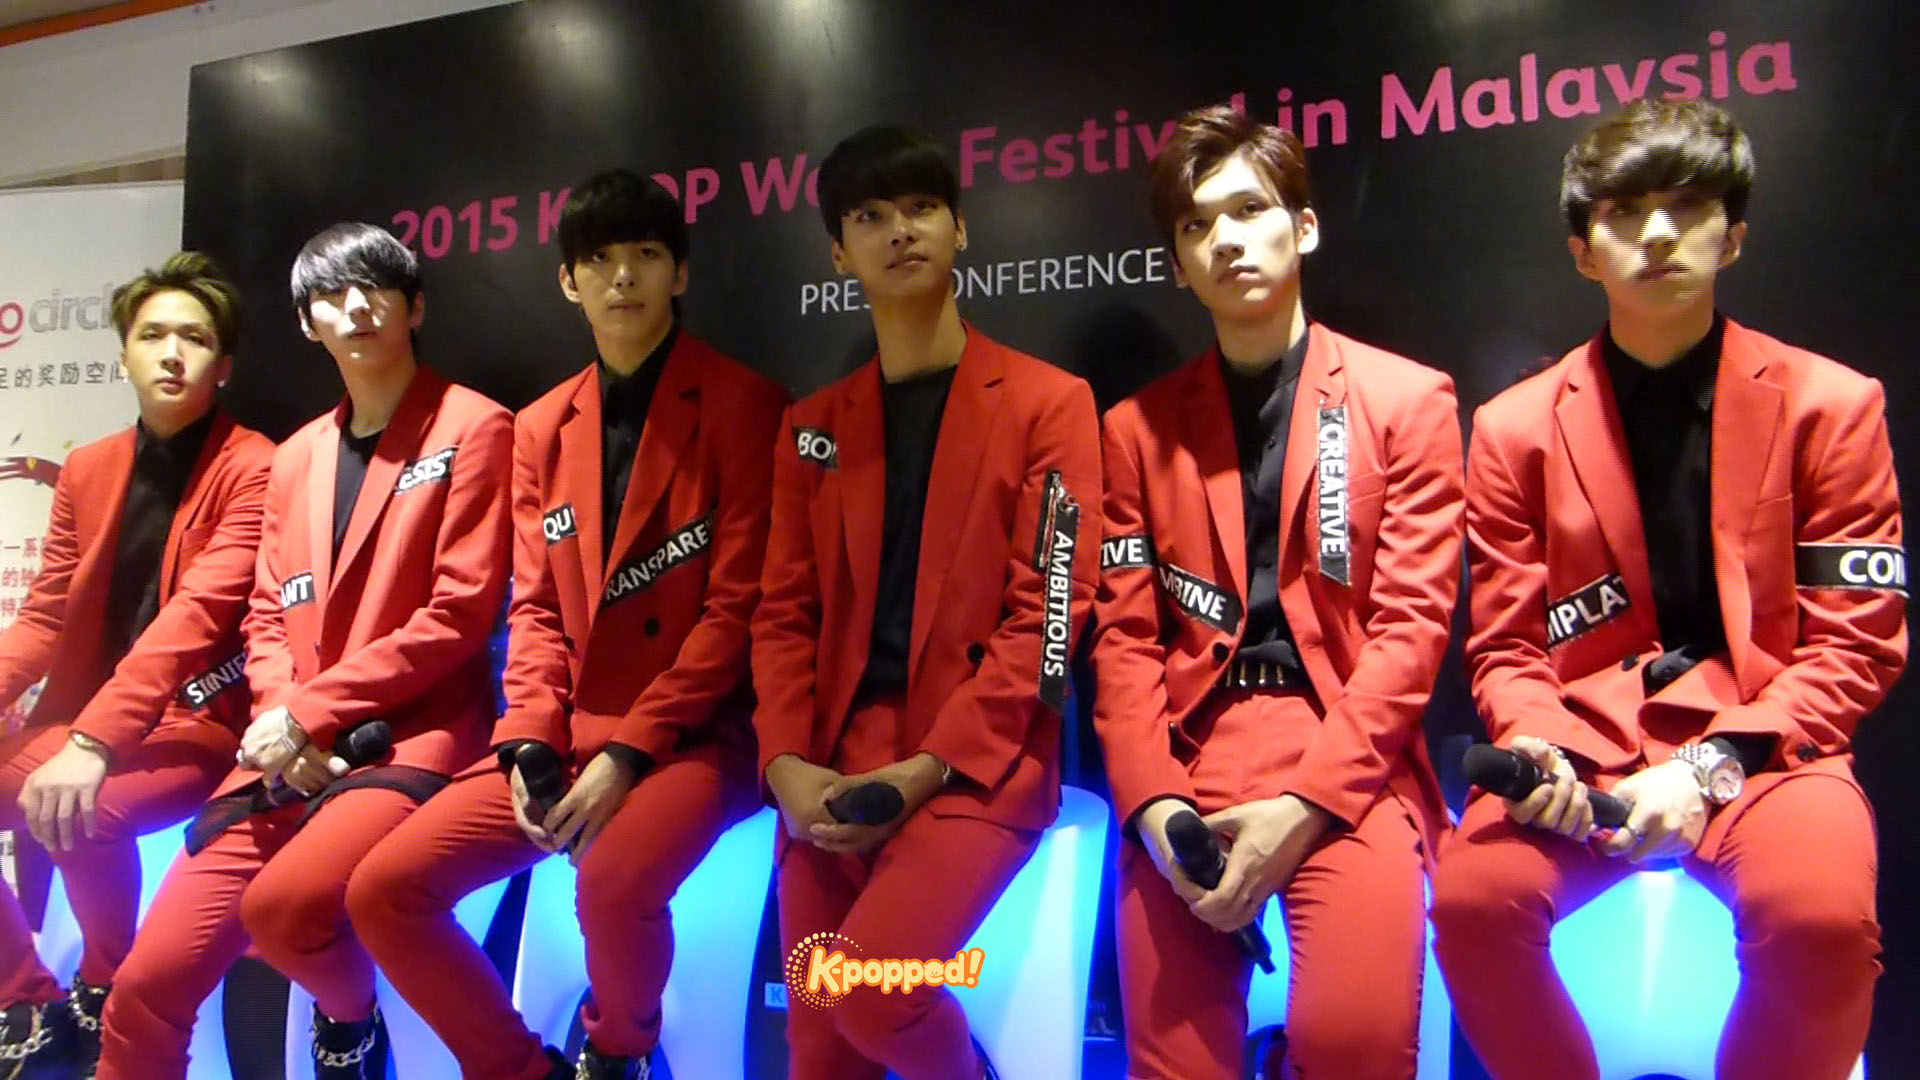 PHOTOS] Press Conference K-pop World Festival 2015 with VIXX